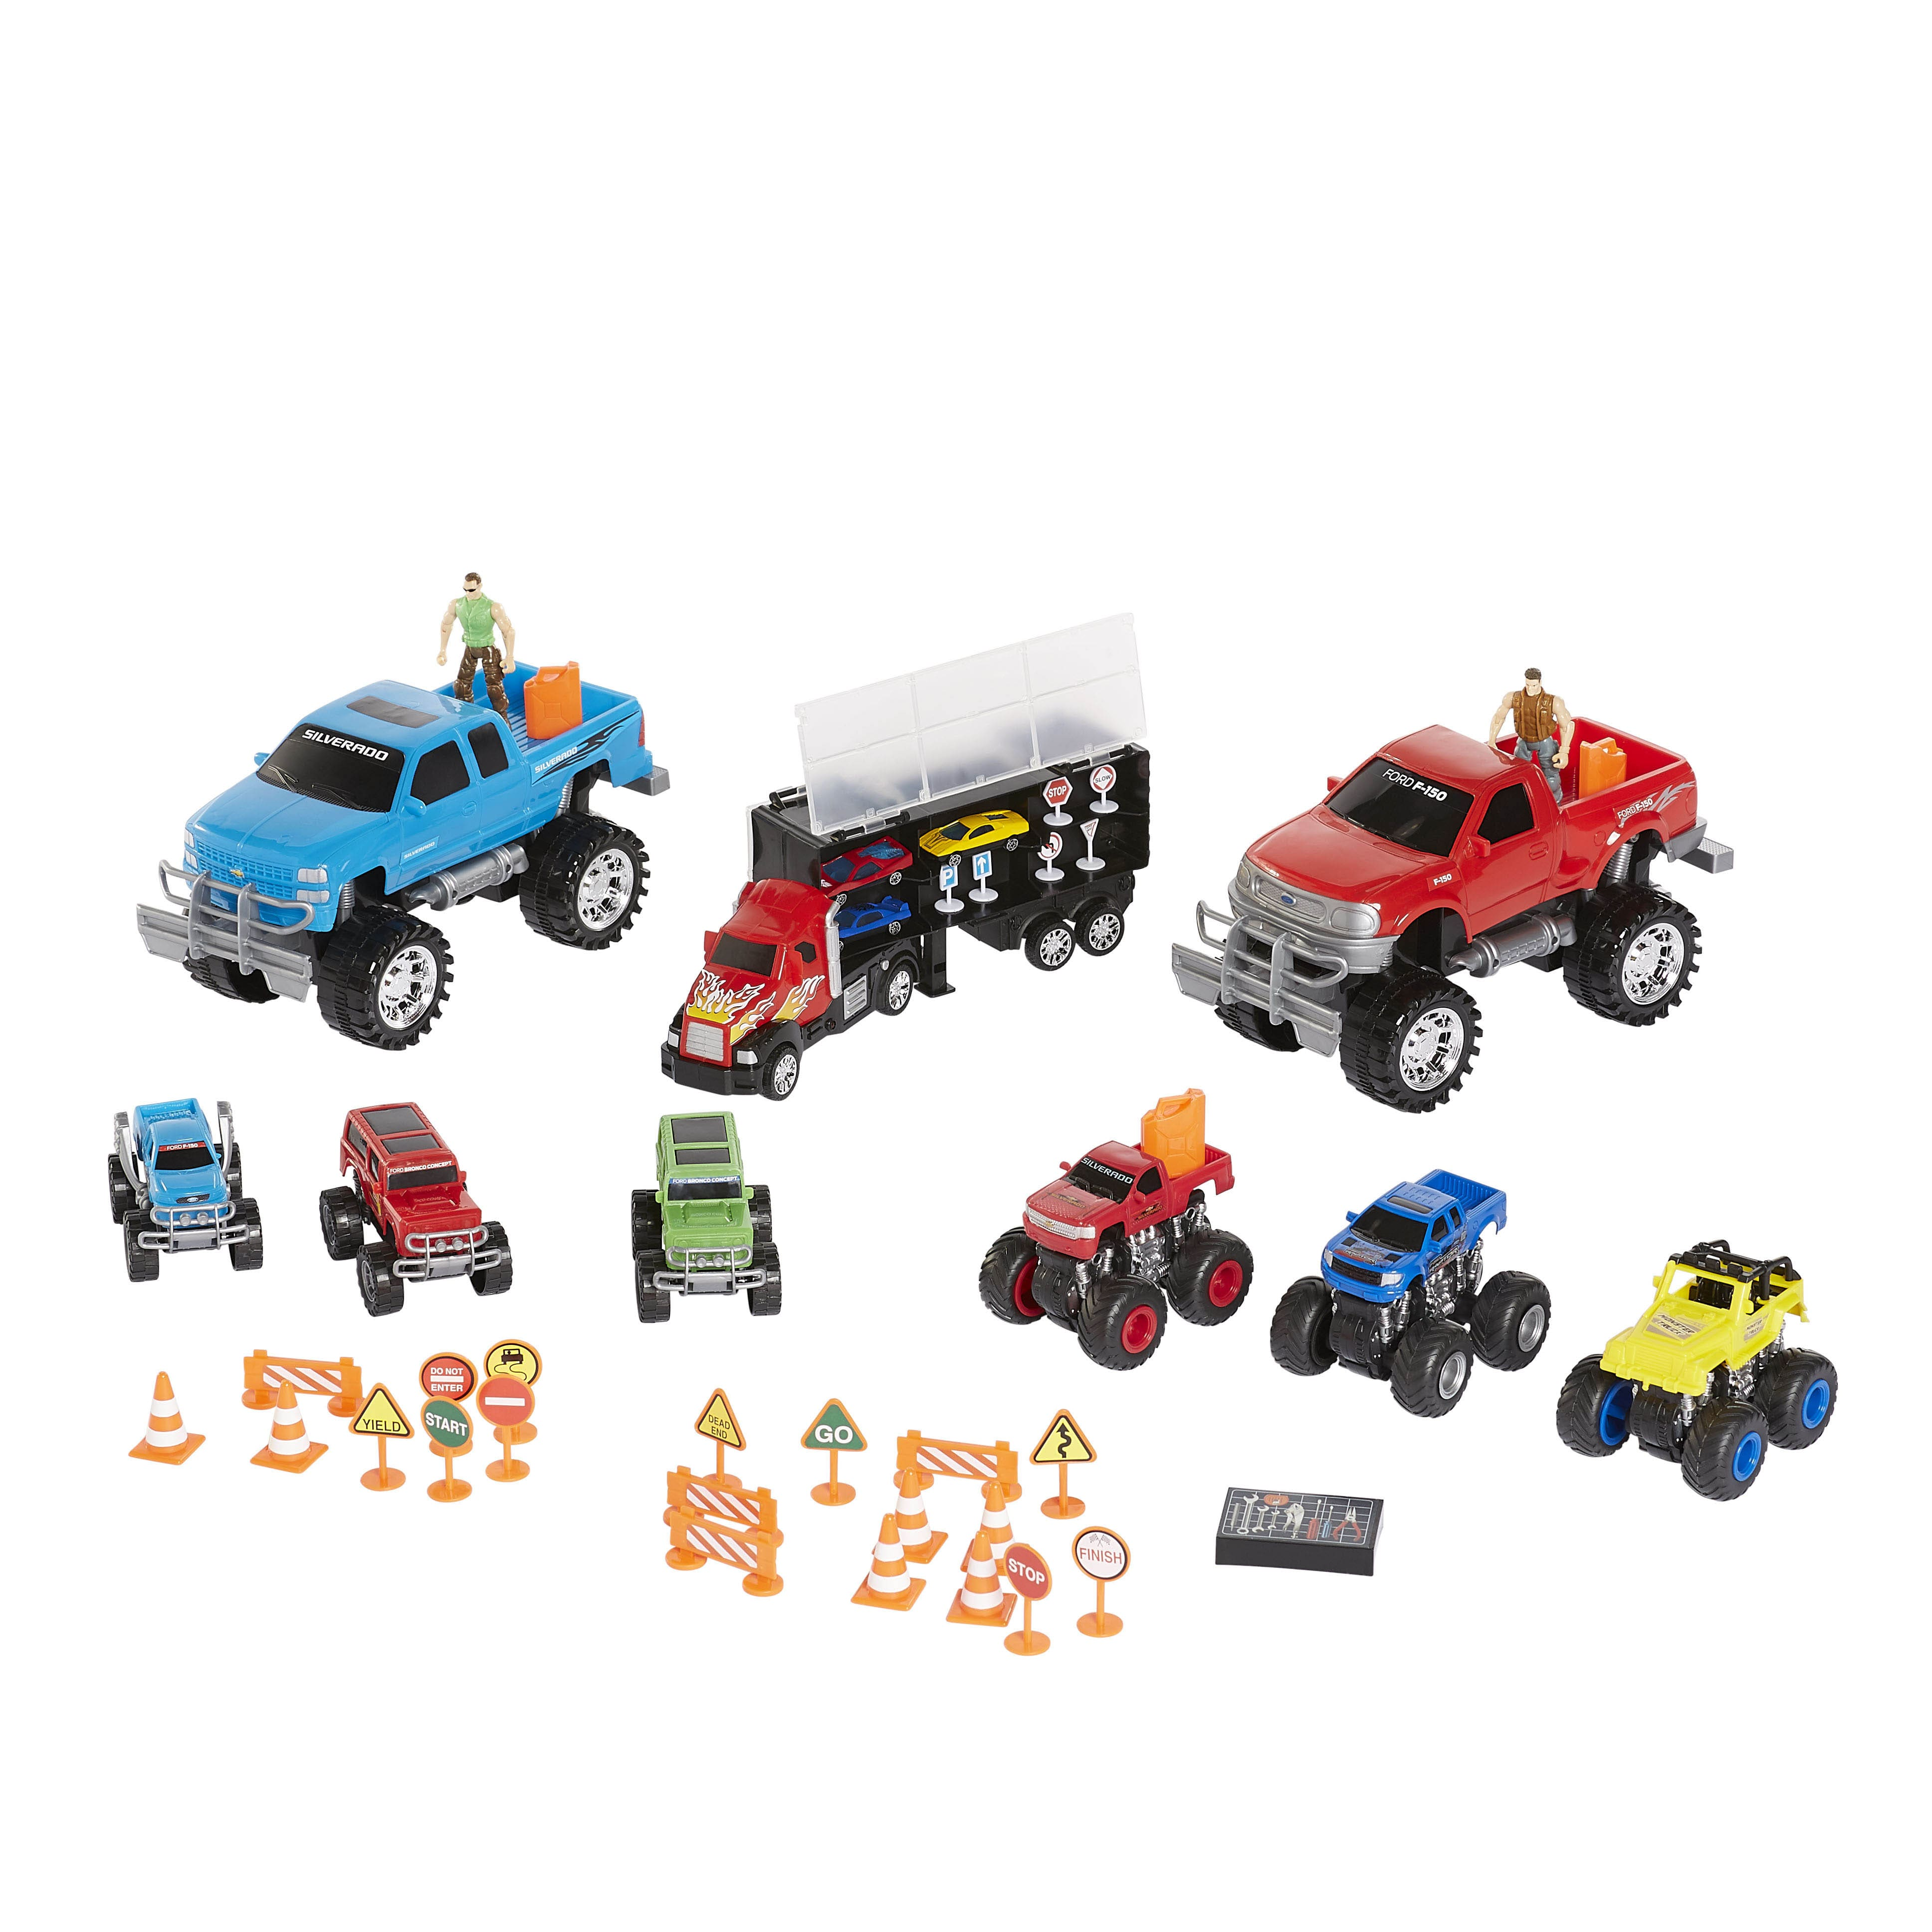 Kid Connection Jumbo Monster Truck Play Set - 44 Pieces $6 62 at Walmart